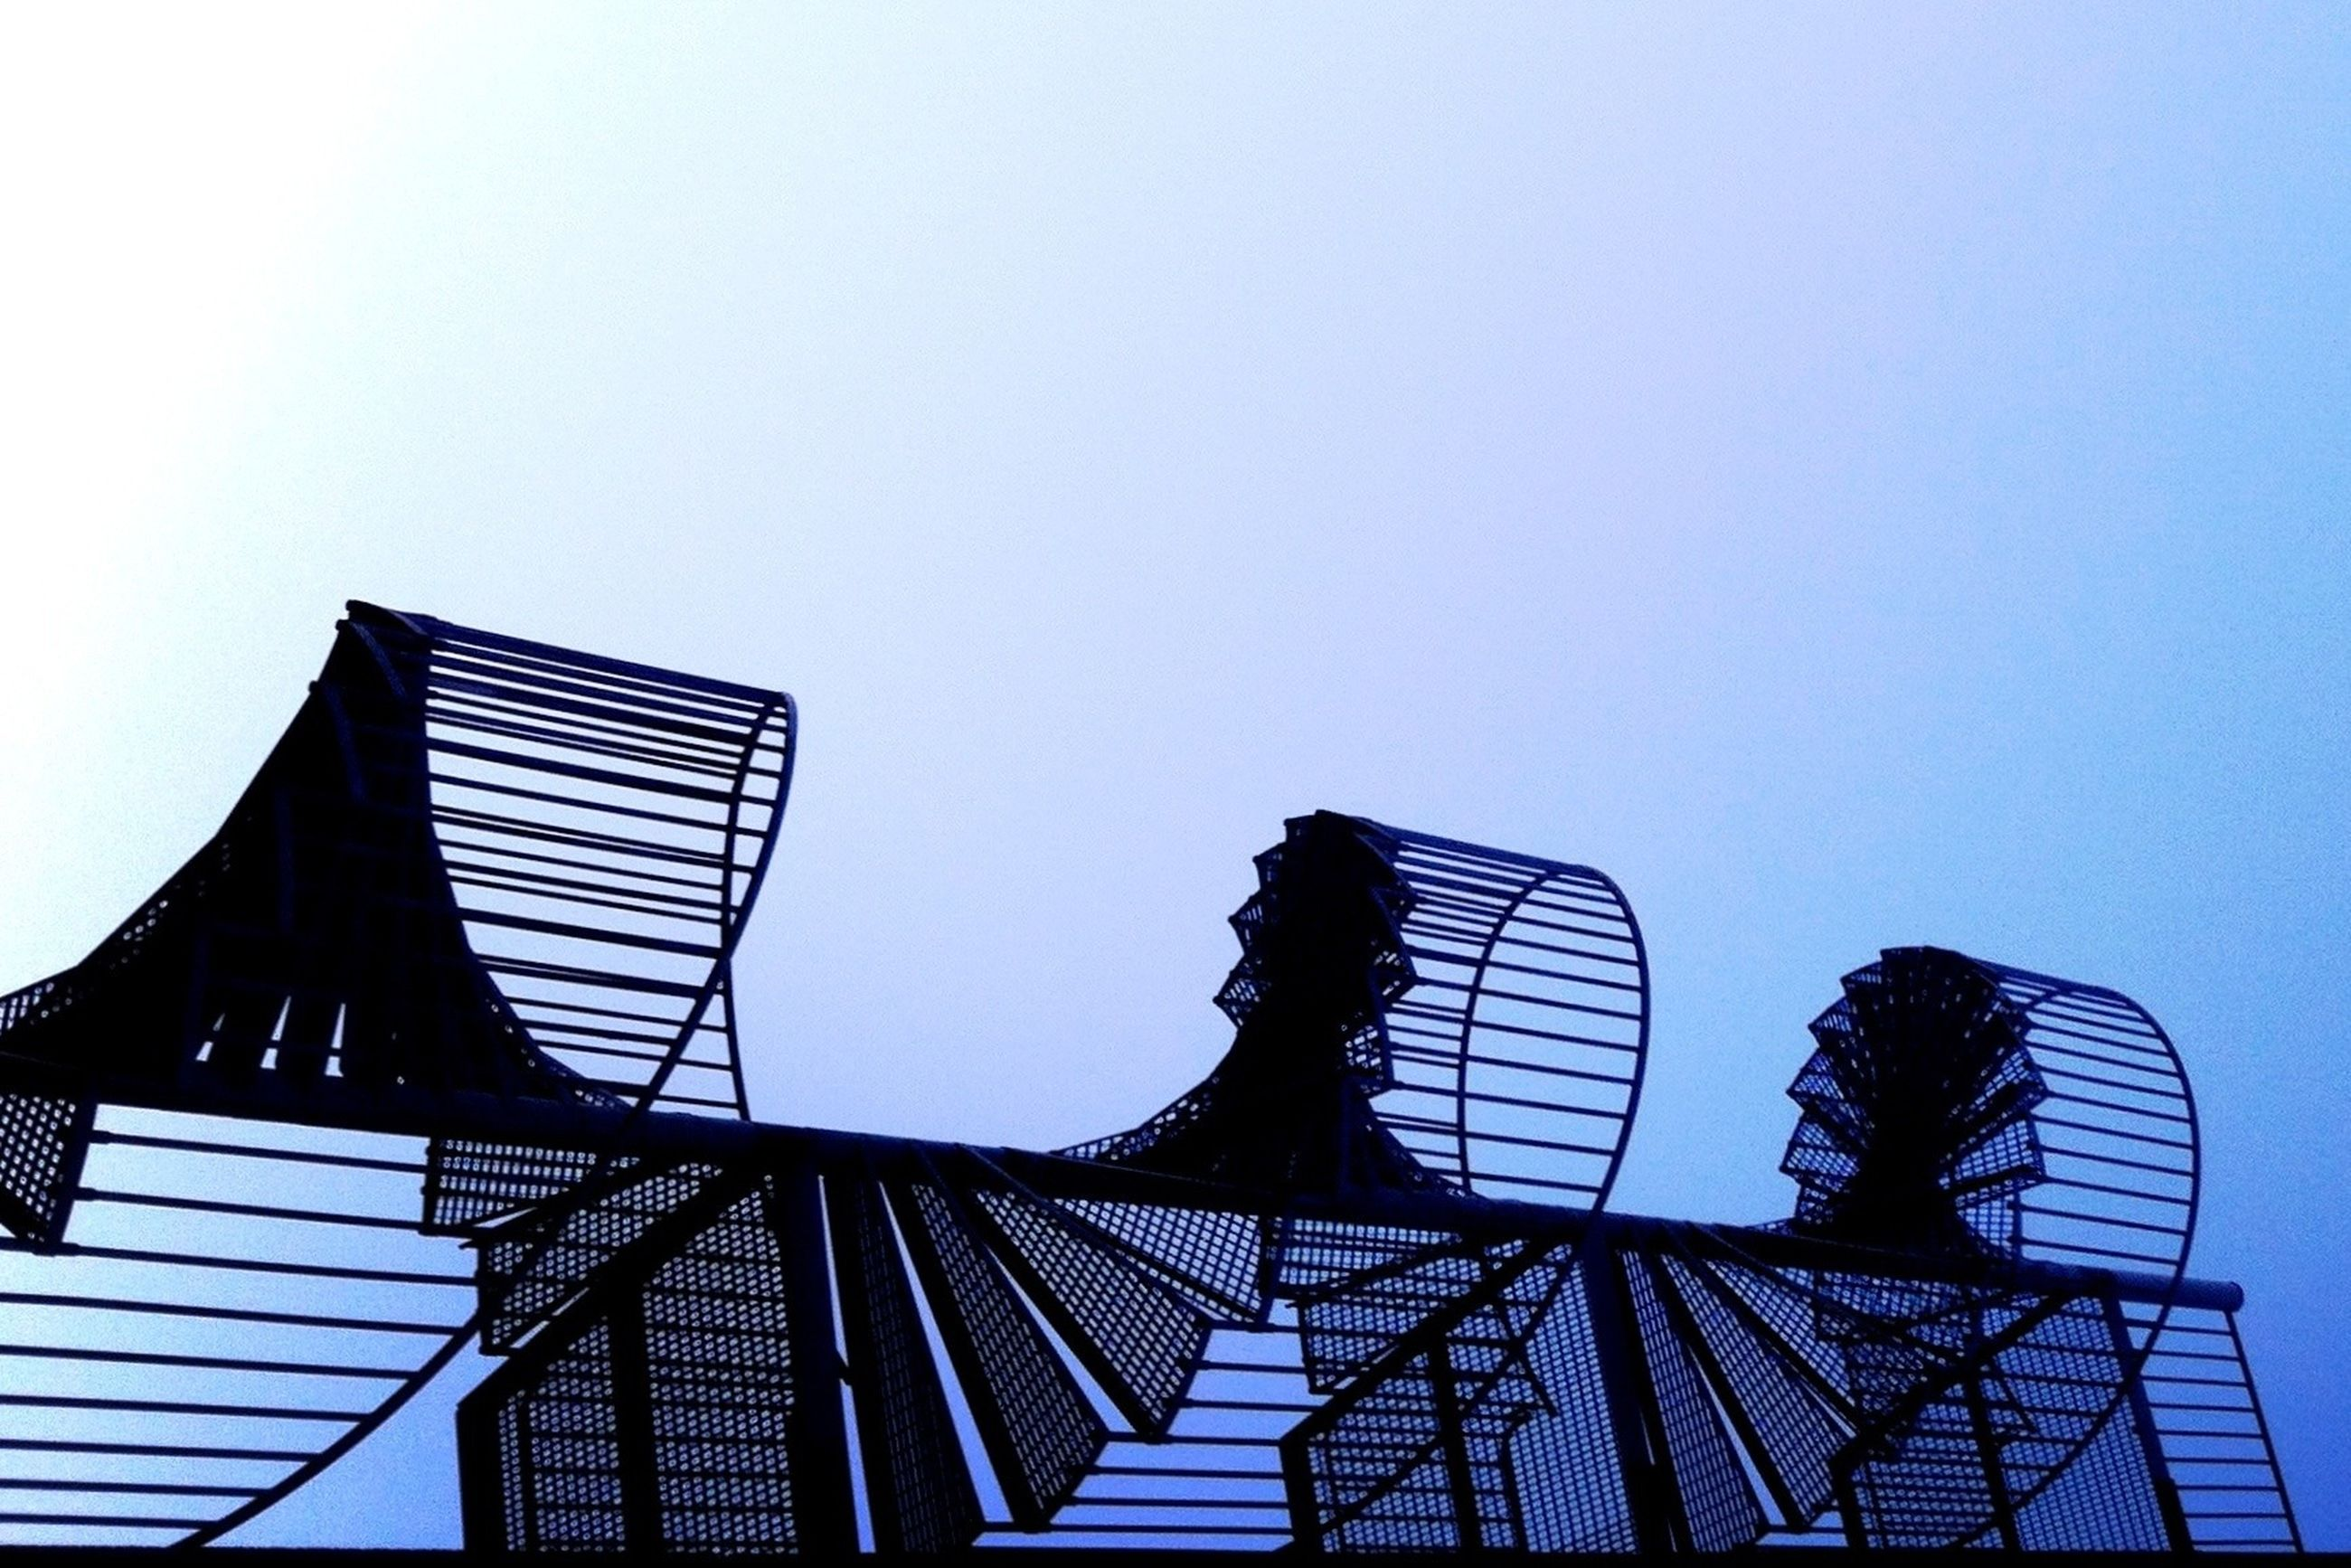 low angle view, clear sky, built structure, architecture, copy space, leisure activity, lifestyles, silhouette, men, sky, building exterior, standing, connection, arts culture and entertainment, railing, outdoors, person, rear view